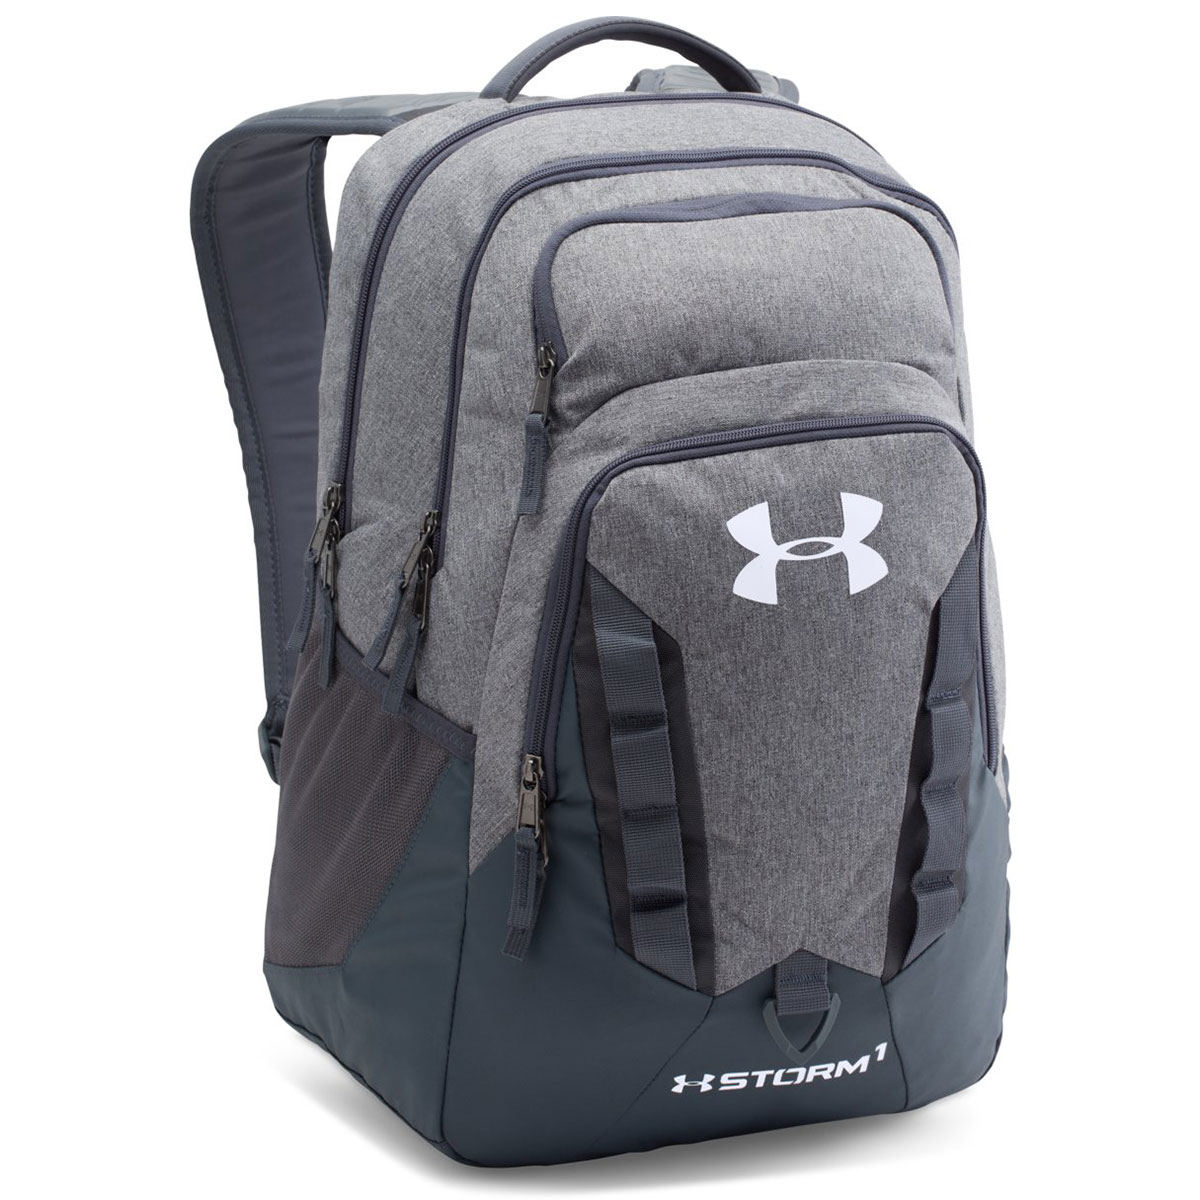 Laptop School Bag Under Armour 2017 Ua Recruit Backpack Storm Rucksack